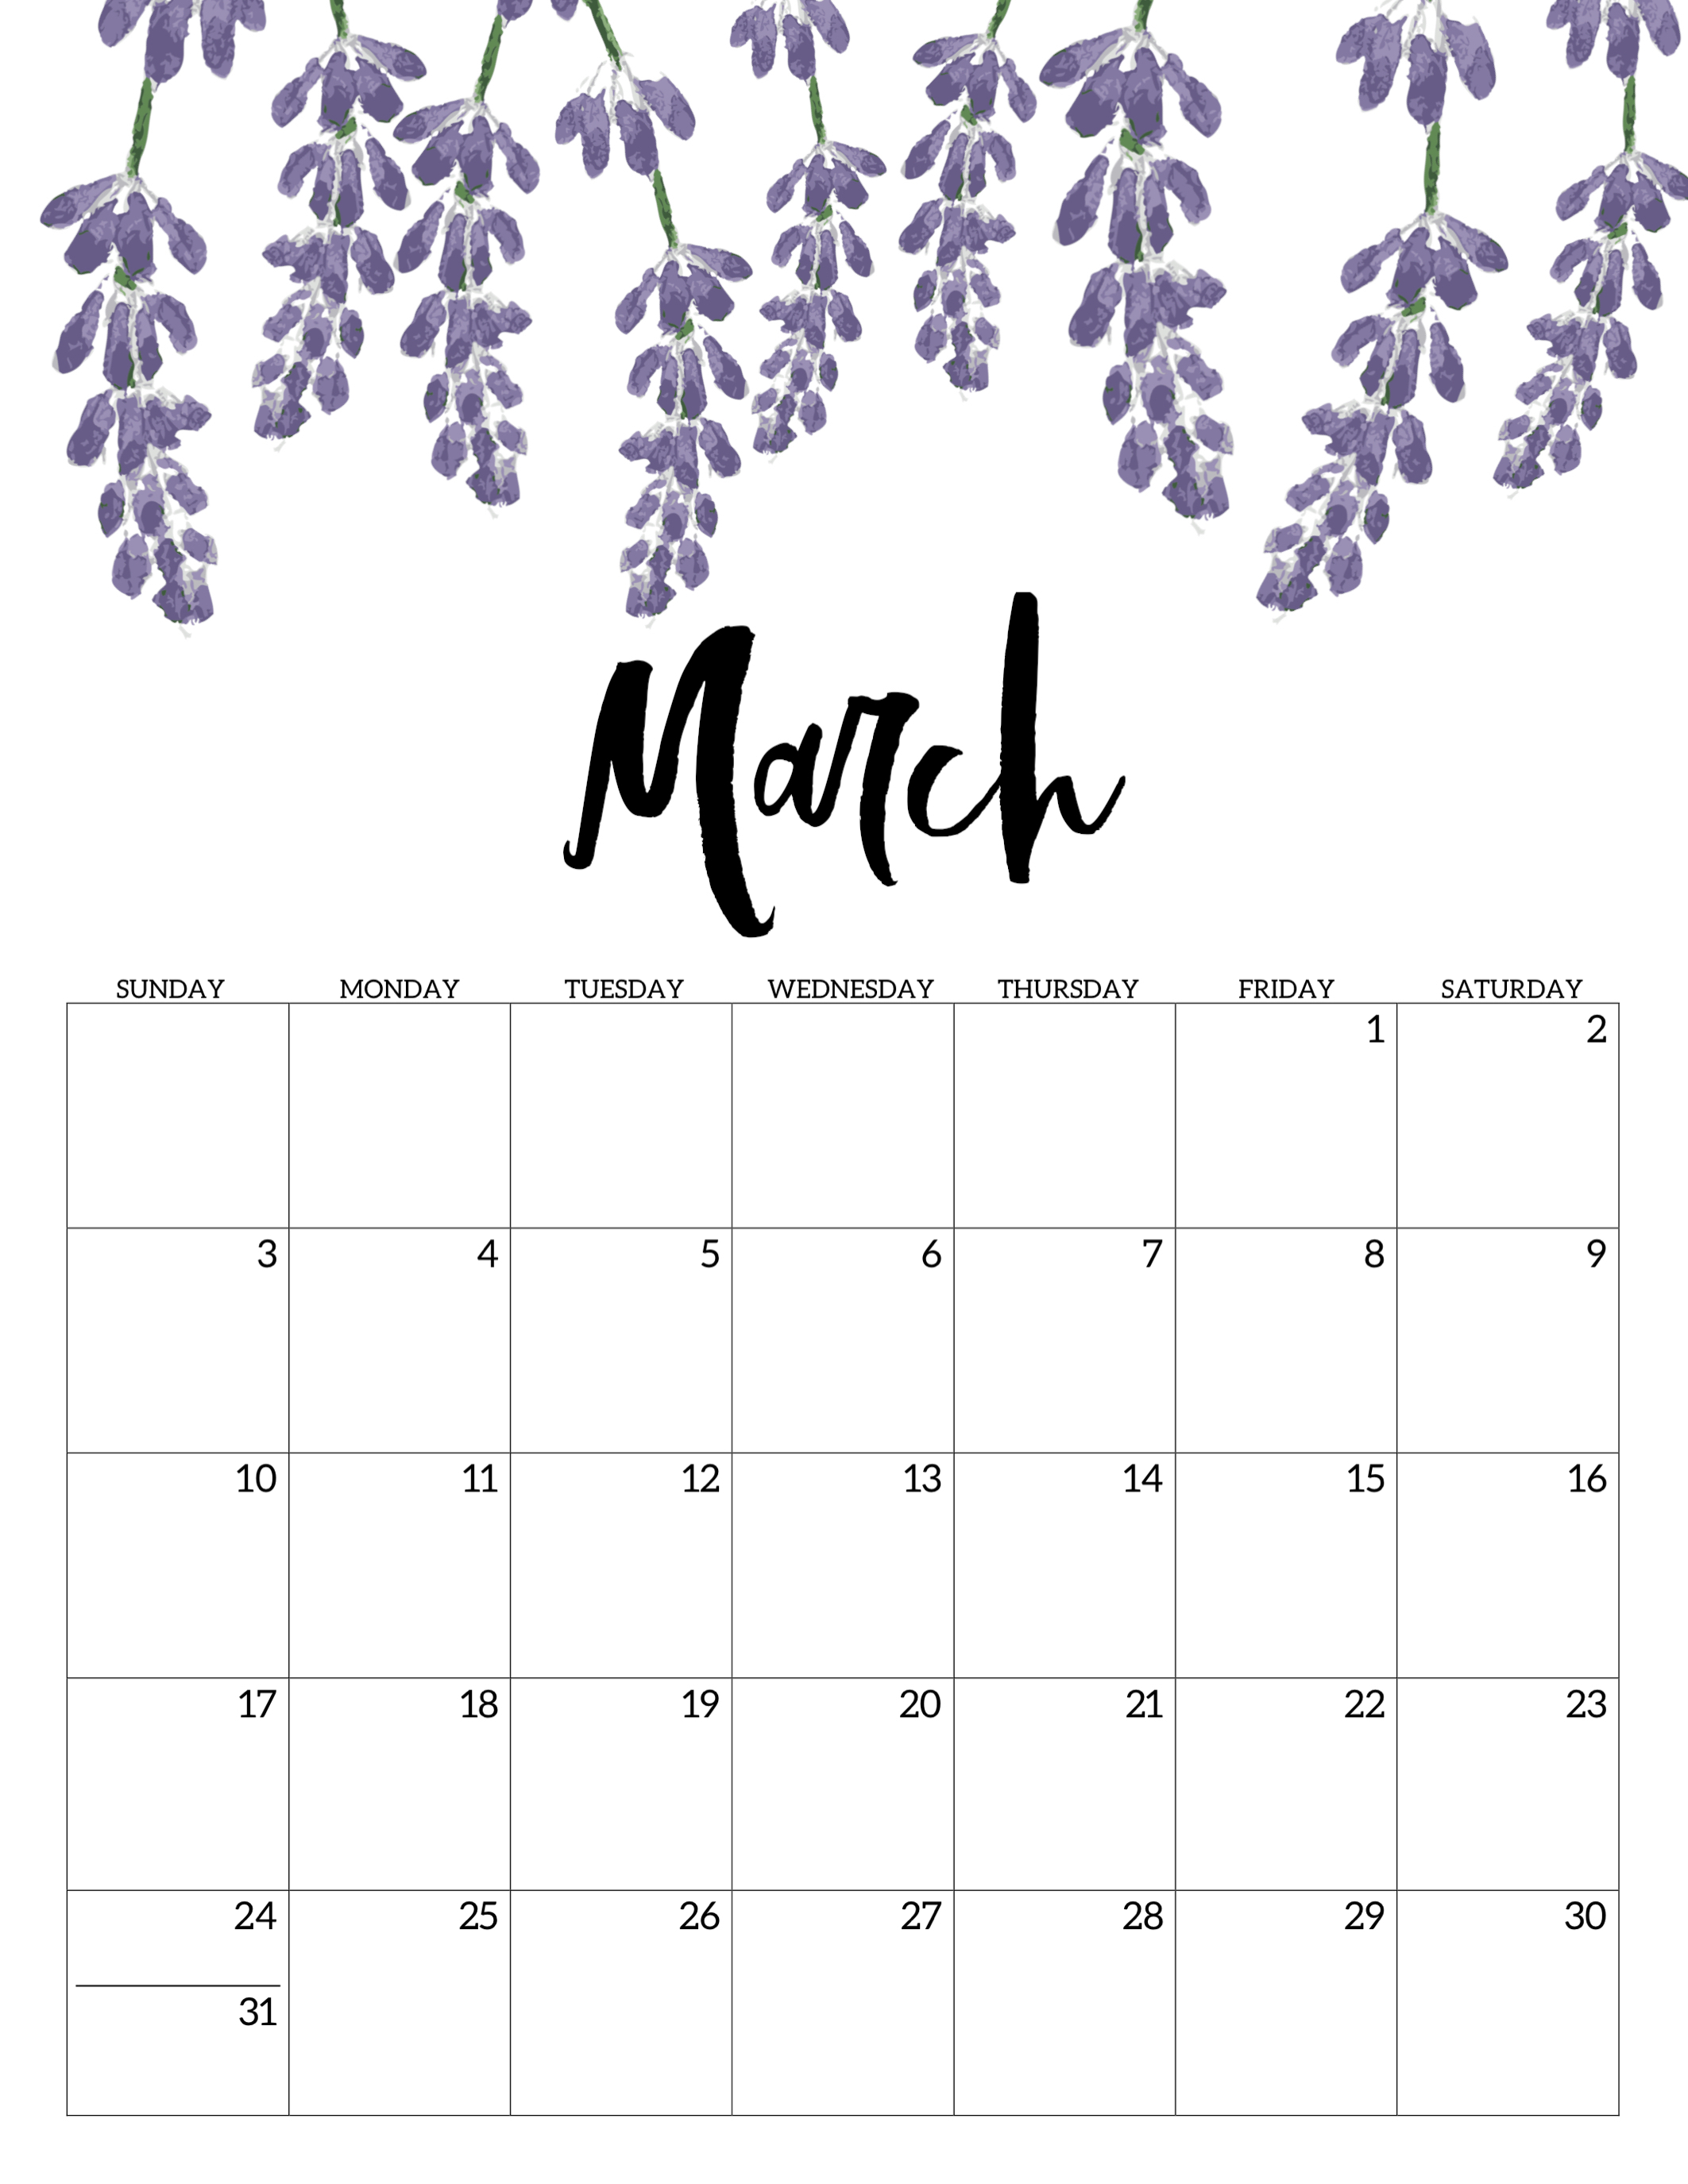 Blank March Calendar 2019 Pdf - Free Printable Calendar Templates intended for Free Cute Printable Calendar Templates